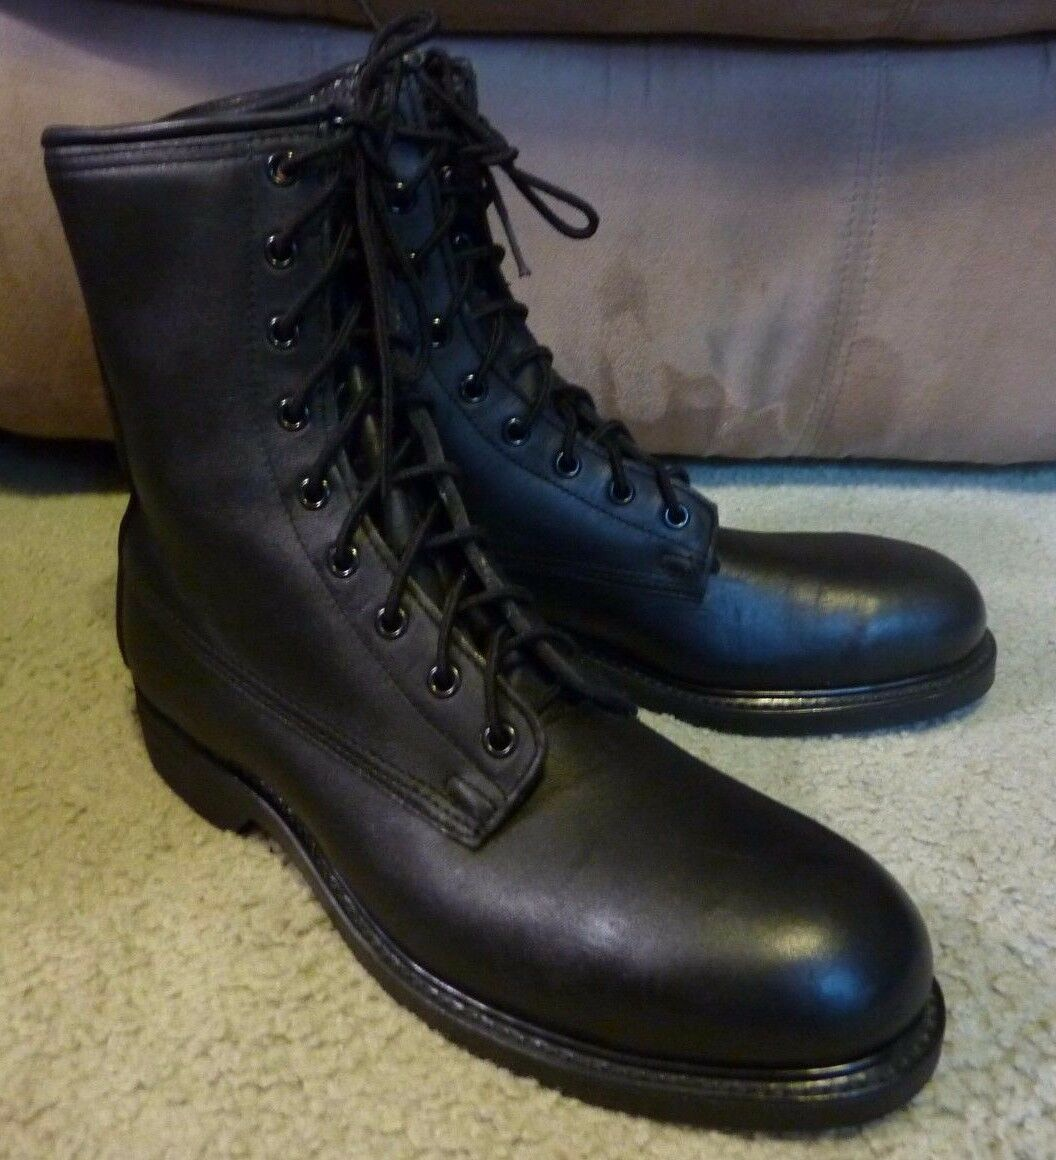 SZ 8 VINTAGE 1987 COVE SHOE COMPANY MADE IN IN IN USA MILITARY WORK BOOTS NOS 764b44